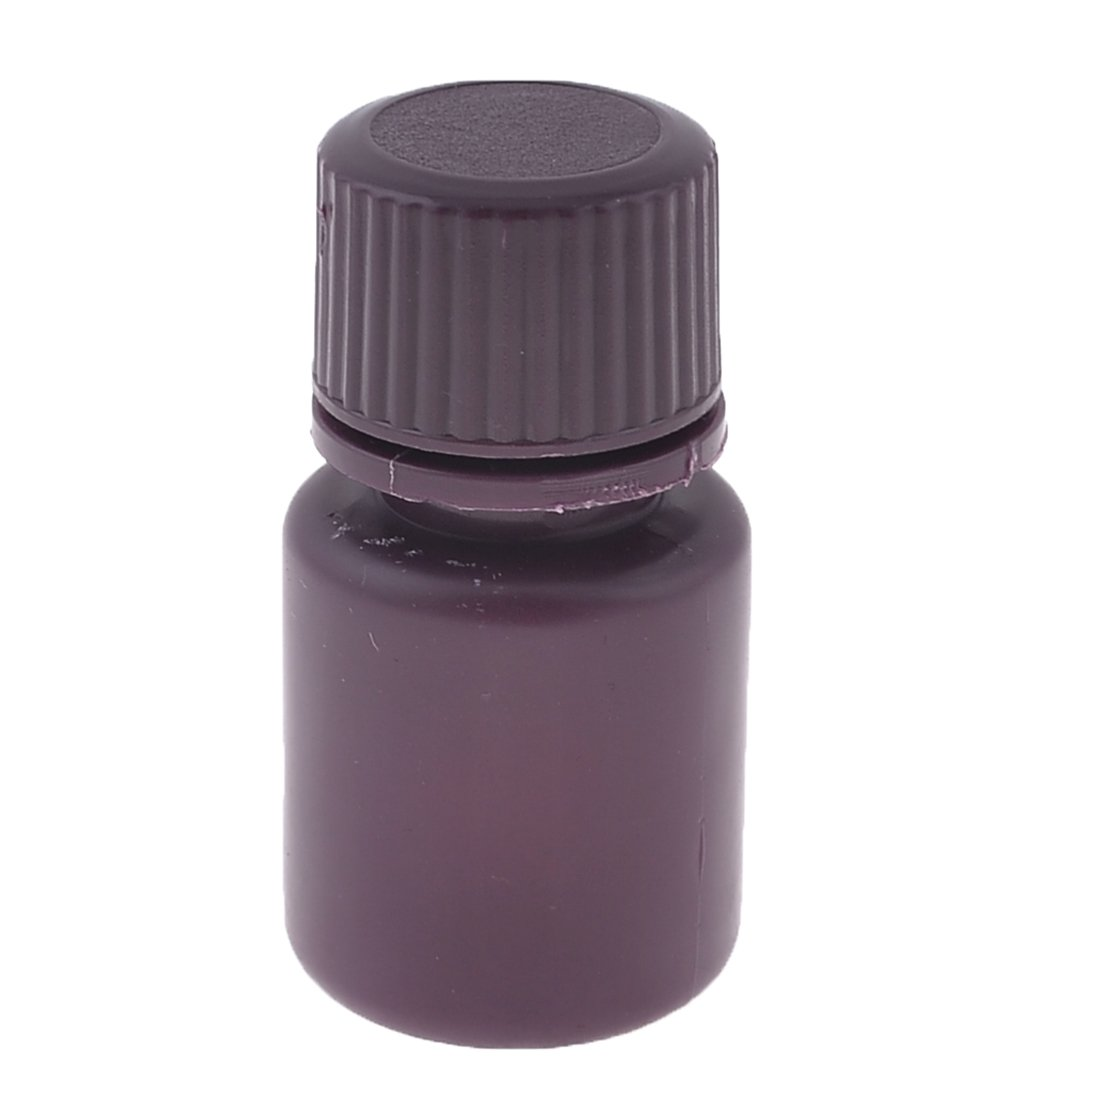 uxcell Screw Cap Cover 15ml Liquid Chemicals Storage Reagent Bottle Maroon